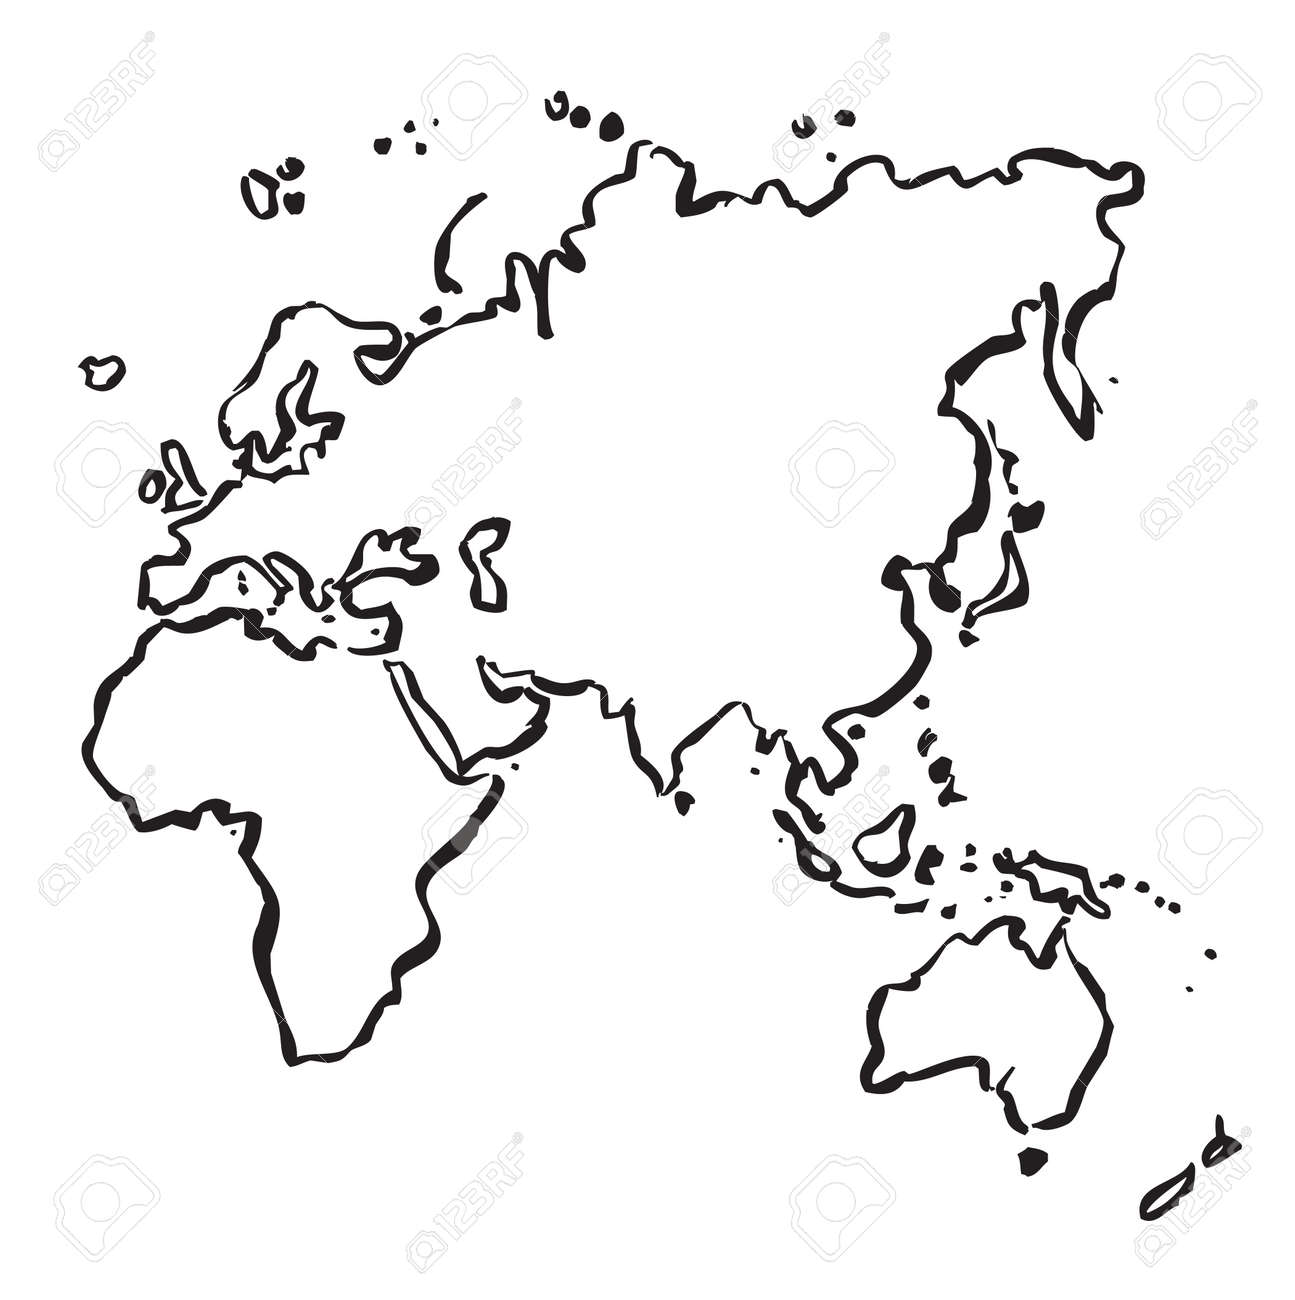 Outline map of europe asia africa and australia royalty free outline map of europe asia africa and australia stock vector 87917096 gumiabroncs Choice Image